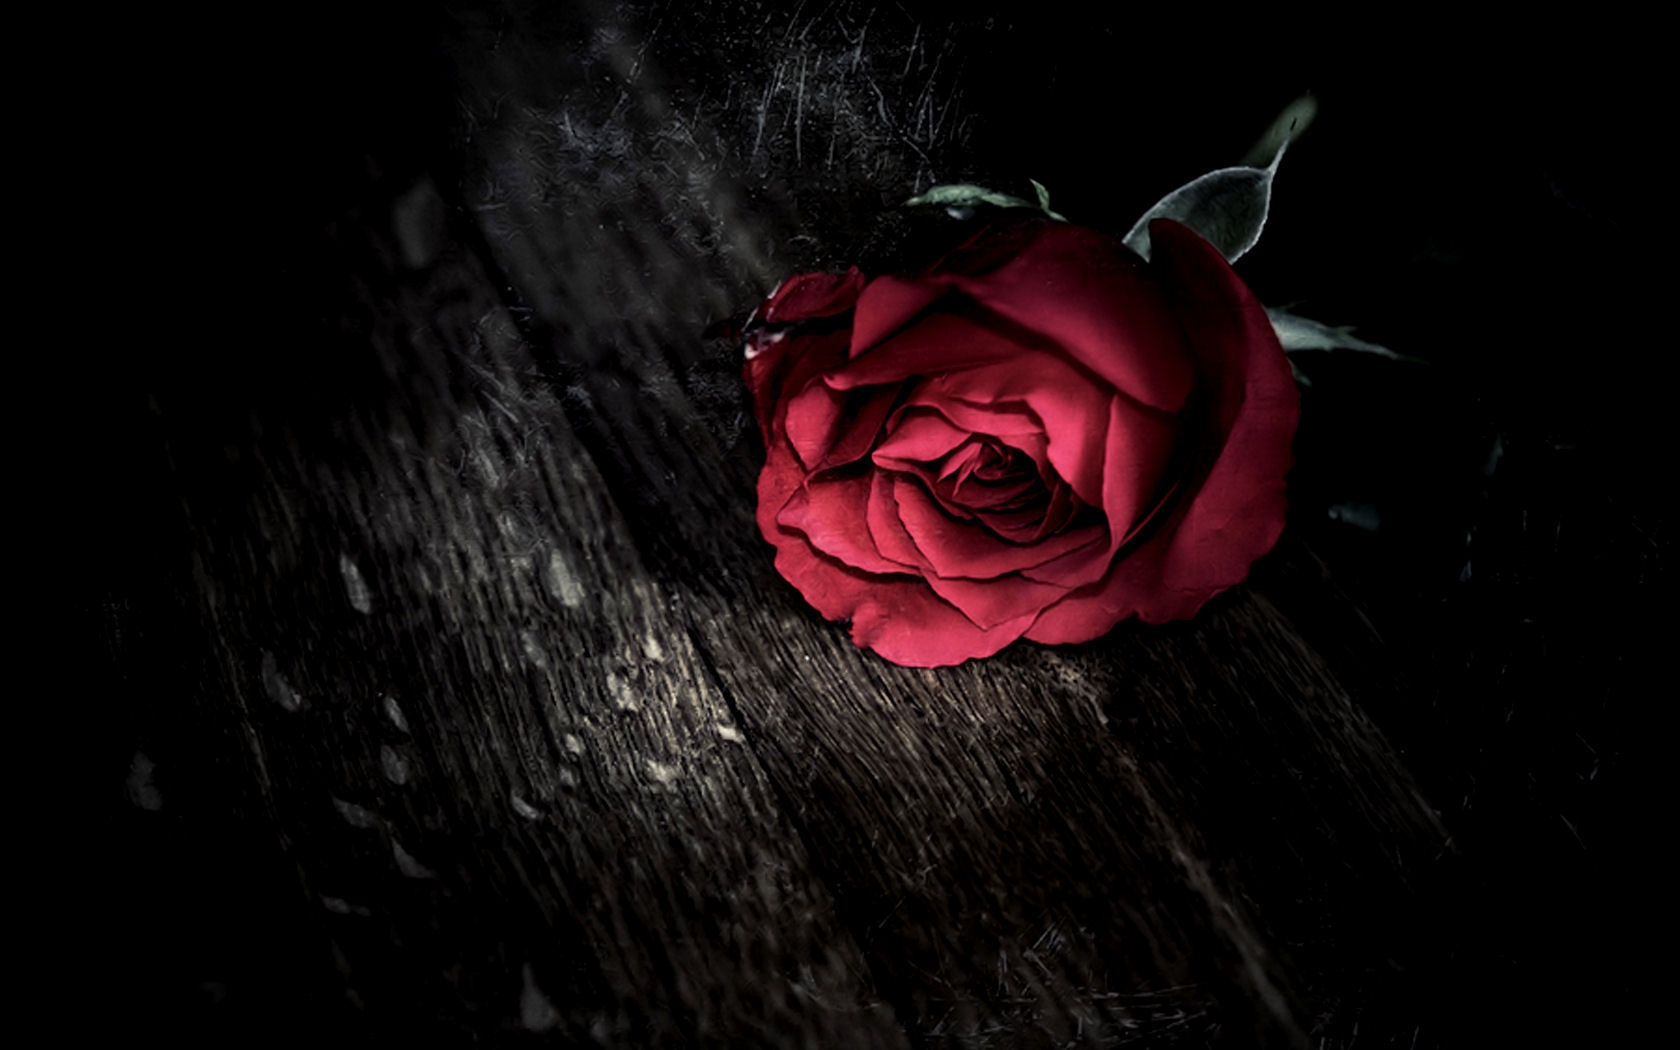 cool-rose-HD-Download-cool-rose-Download-cool-rose-HD-Download-wallpaper-wp3404199